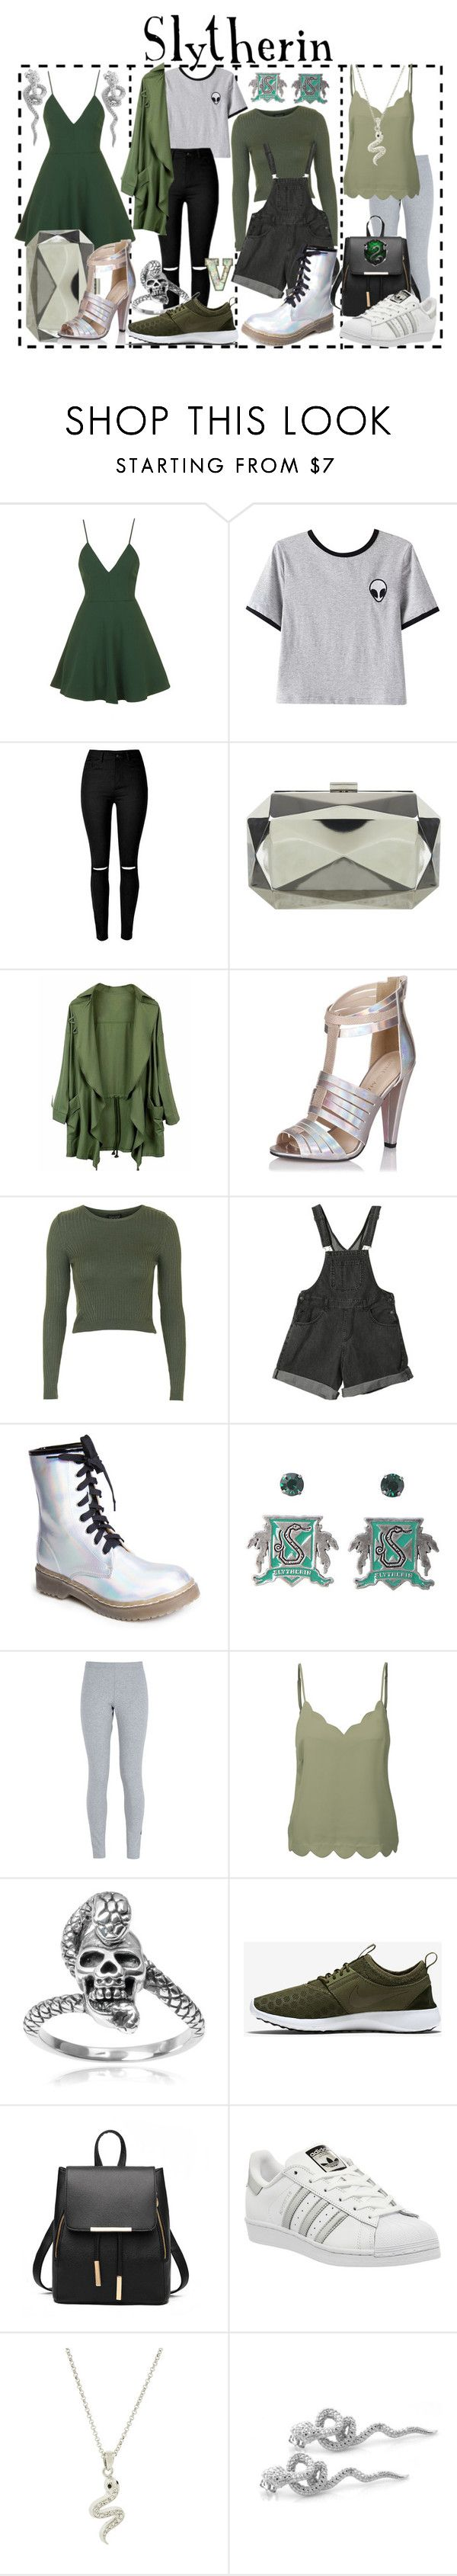 Slytherin (Harry Potter) by fabfandoms on Polyvore featuring Topshop, LE3NO, Chicnova Fashion, NIKE, Little Mistress, adidas, Miss Selfridge, Tressa, De Buman and Andrew Hamilton Crawford